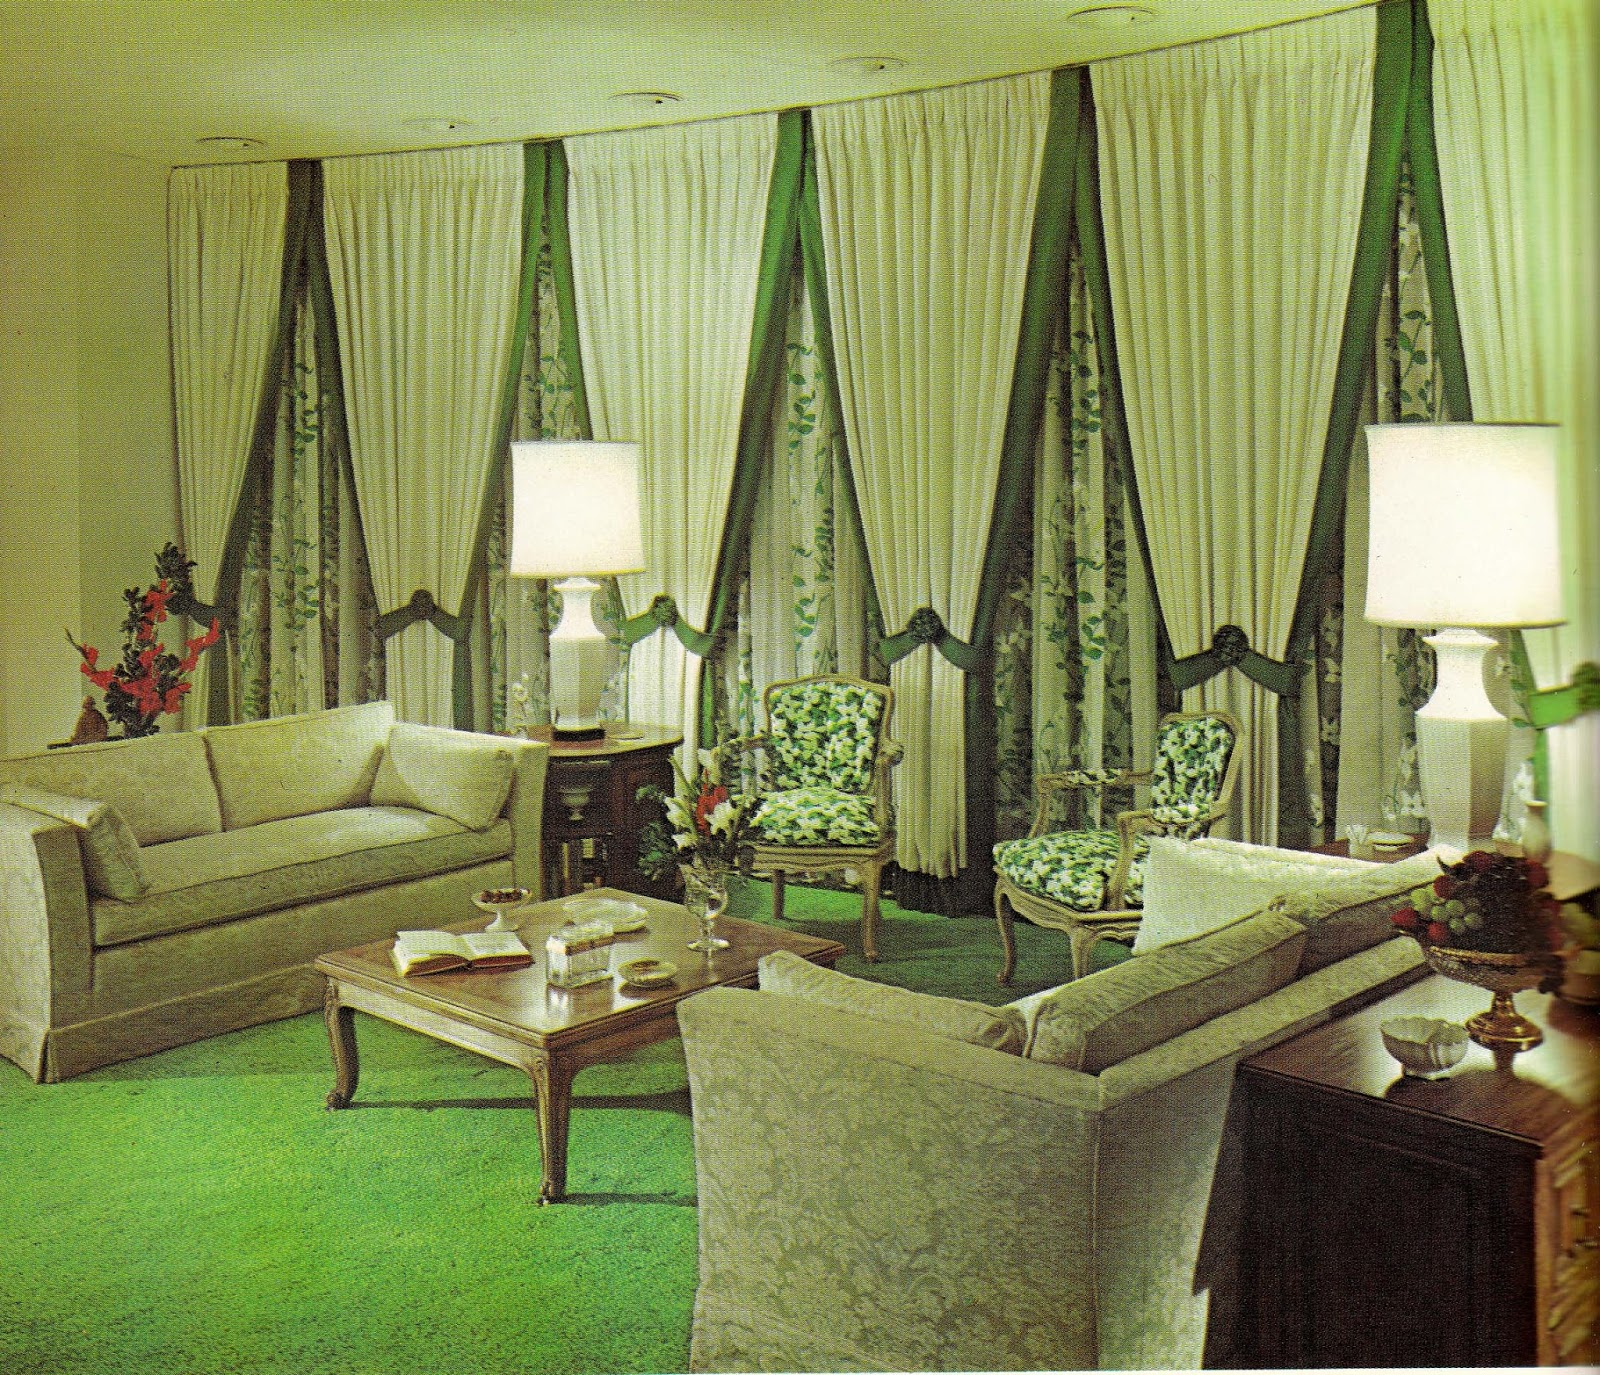 Interior Decorating Items 1960s Interior Décor The Decade Of Psychedelia Gave Rise